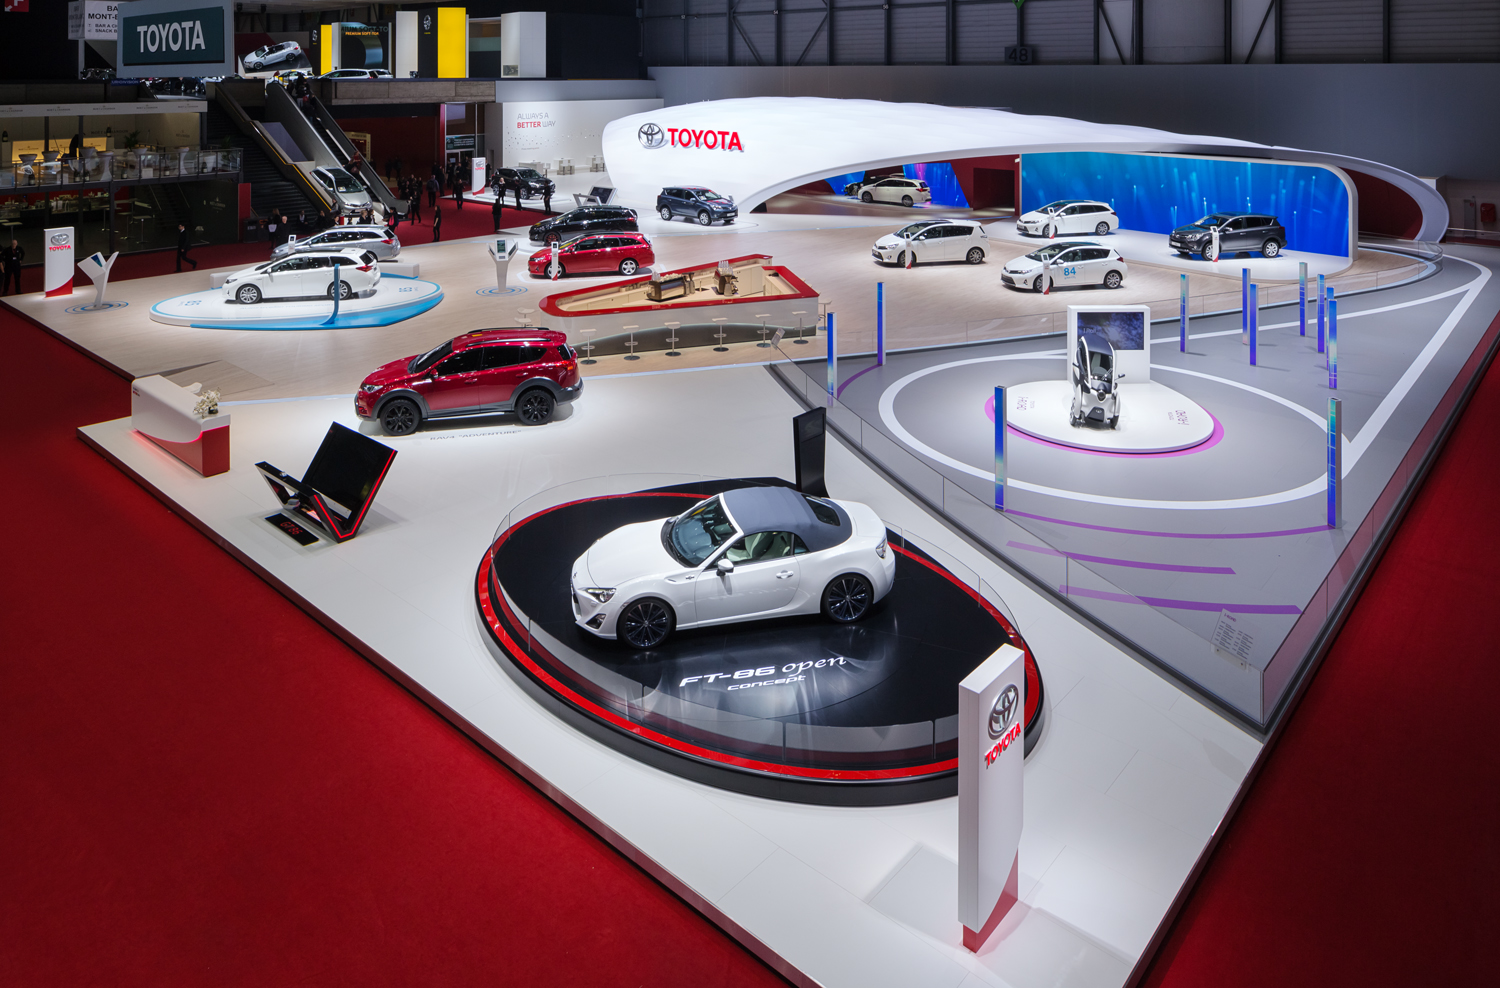 Toyota thoroughly prepared for the Frankfurt Motor Show